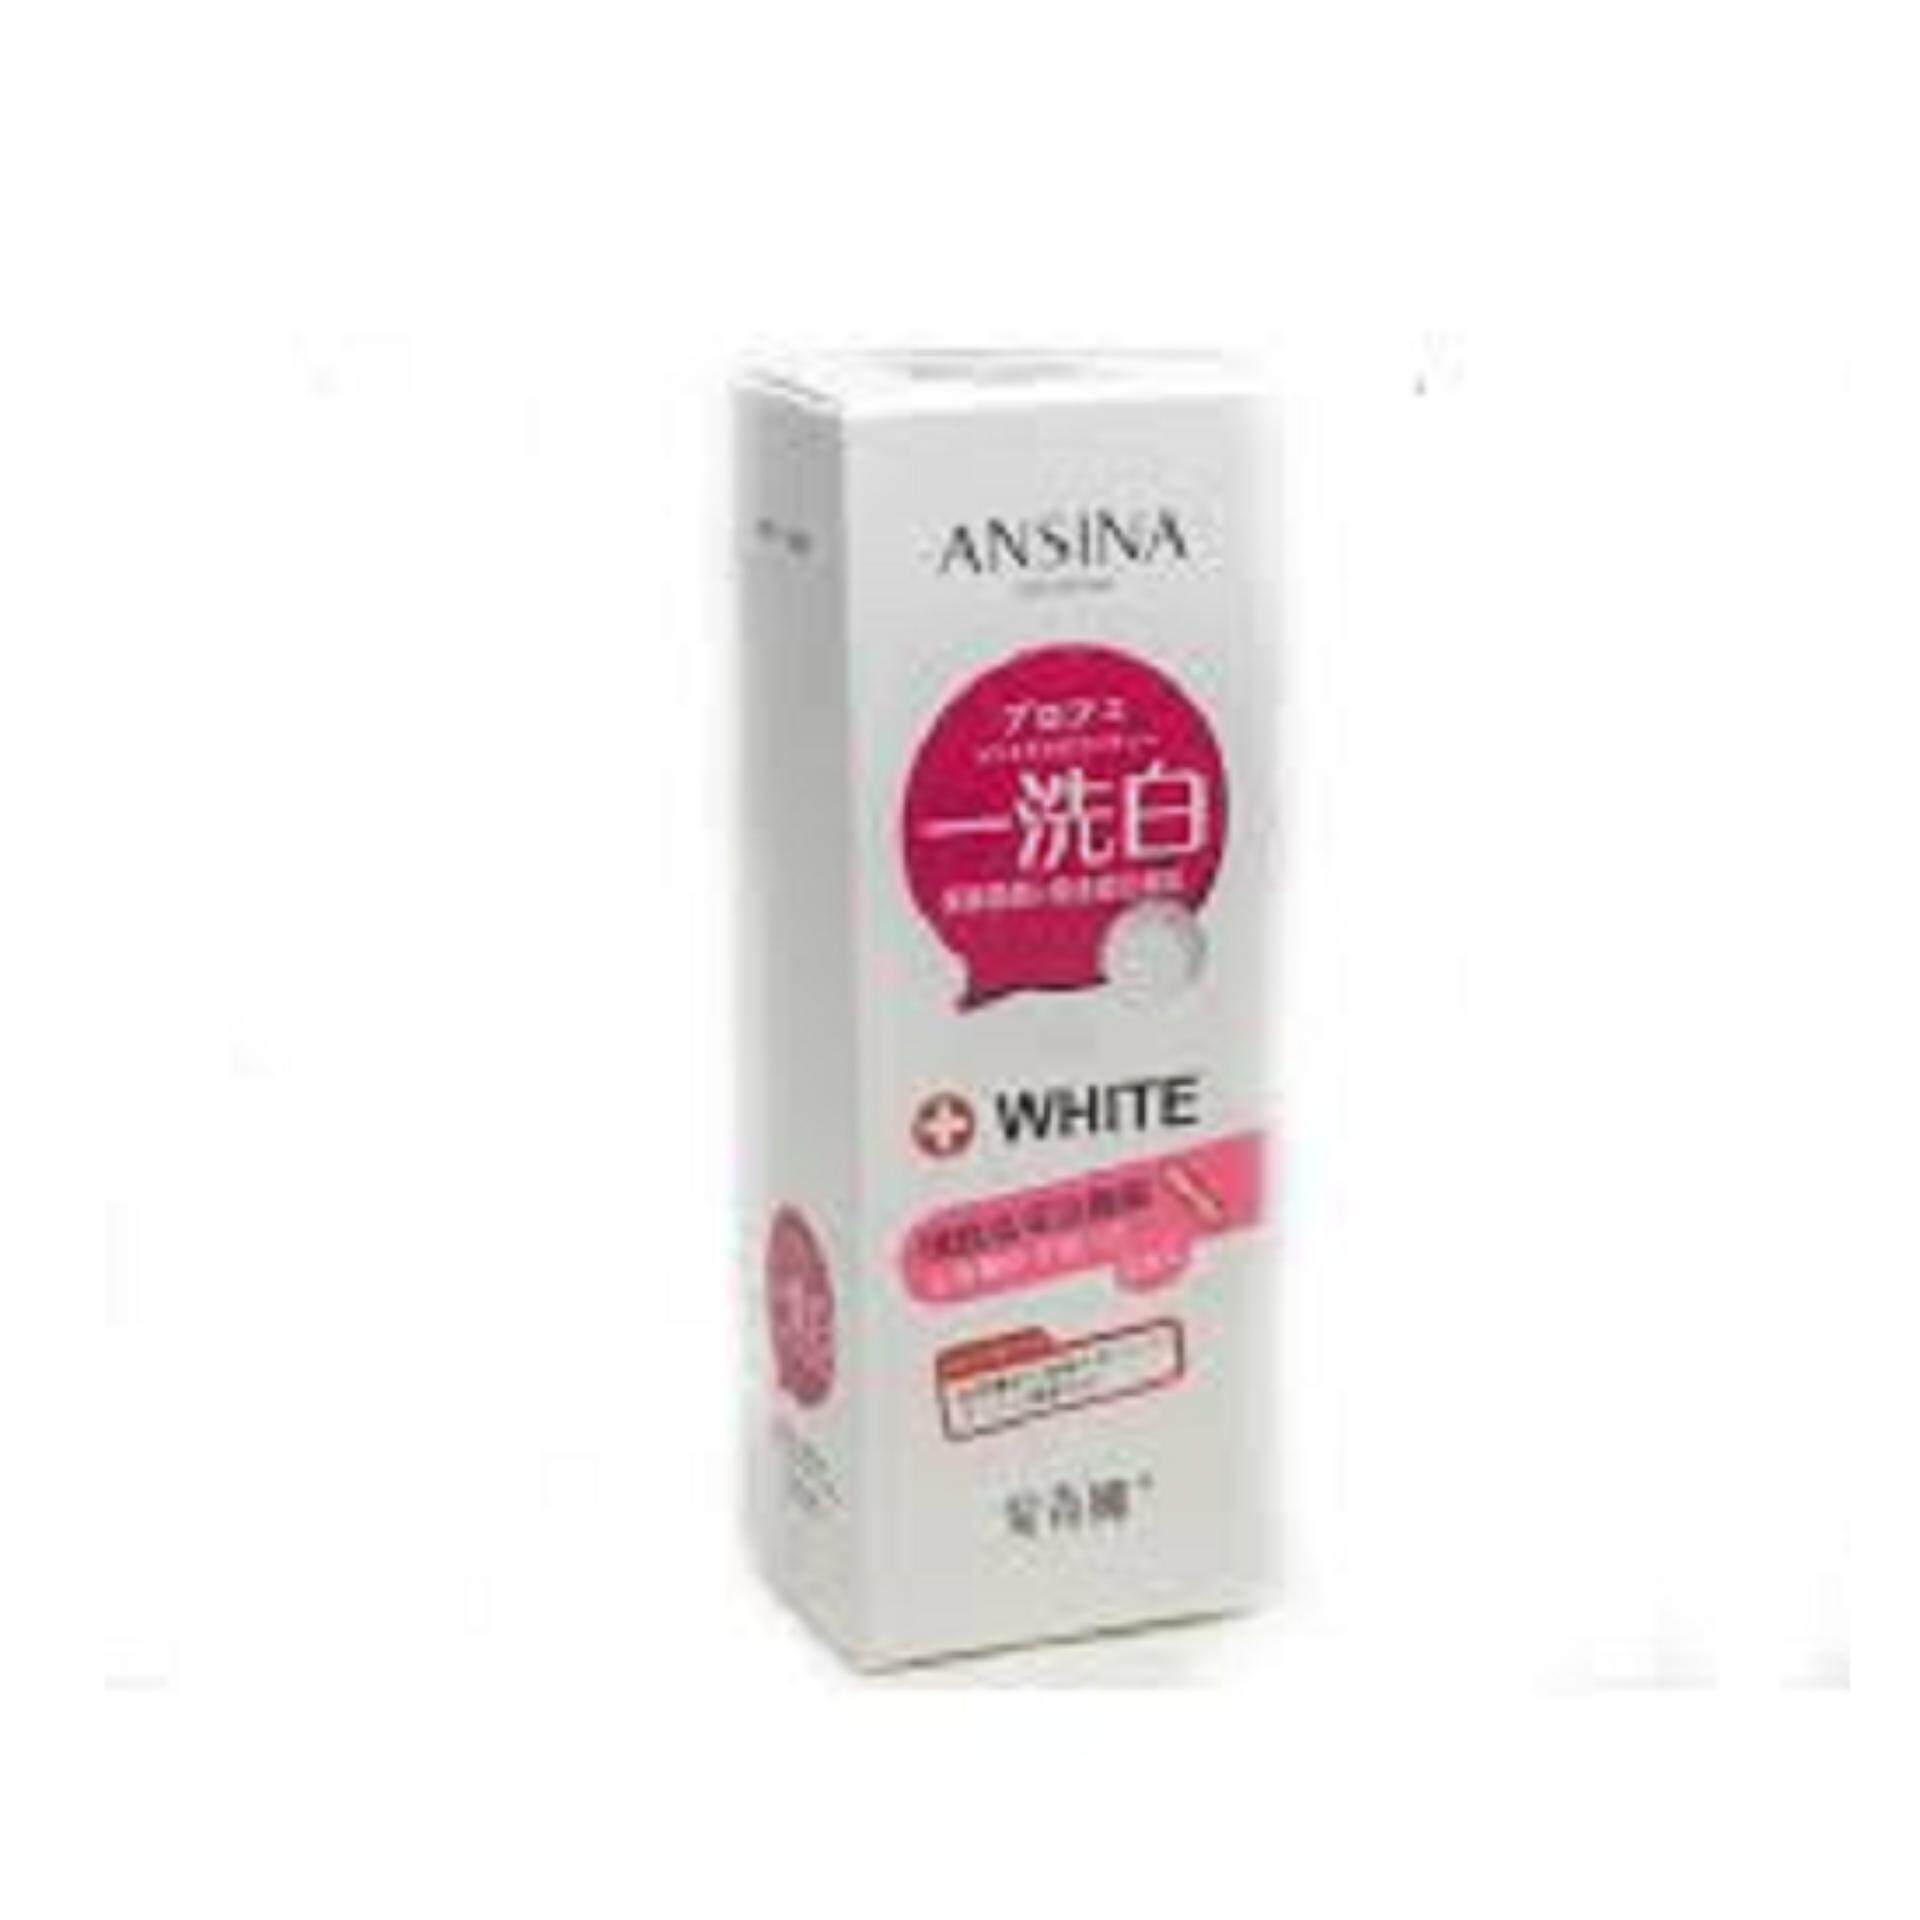 Ansina Acne Natural Care and whitening Cleanser